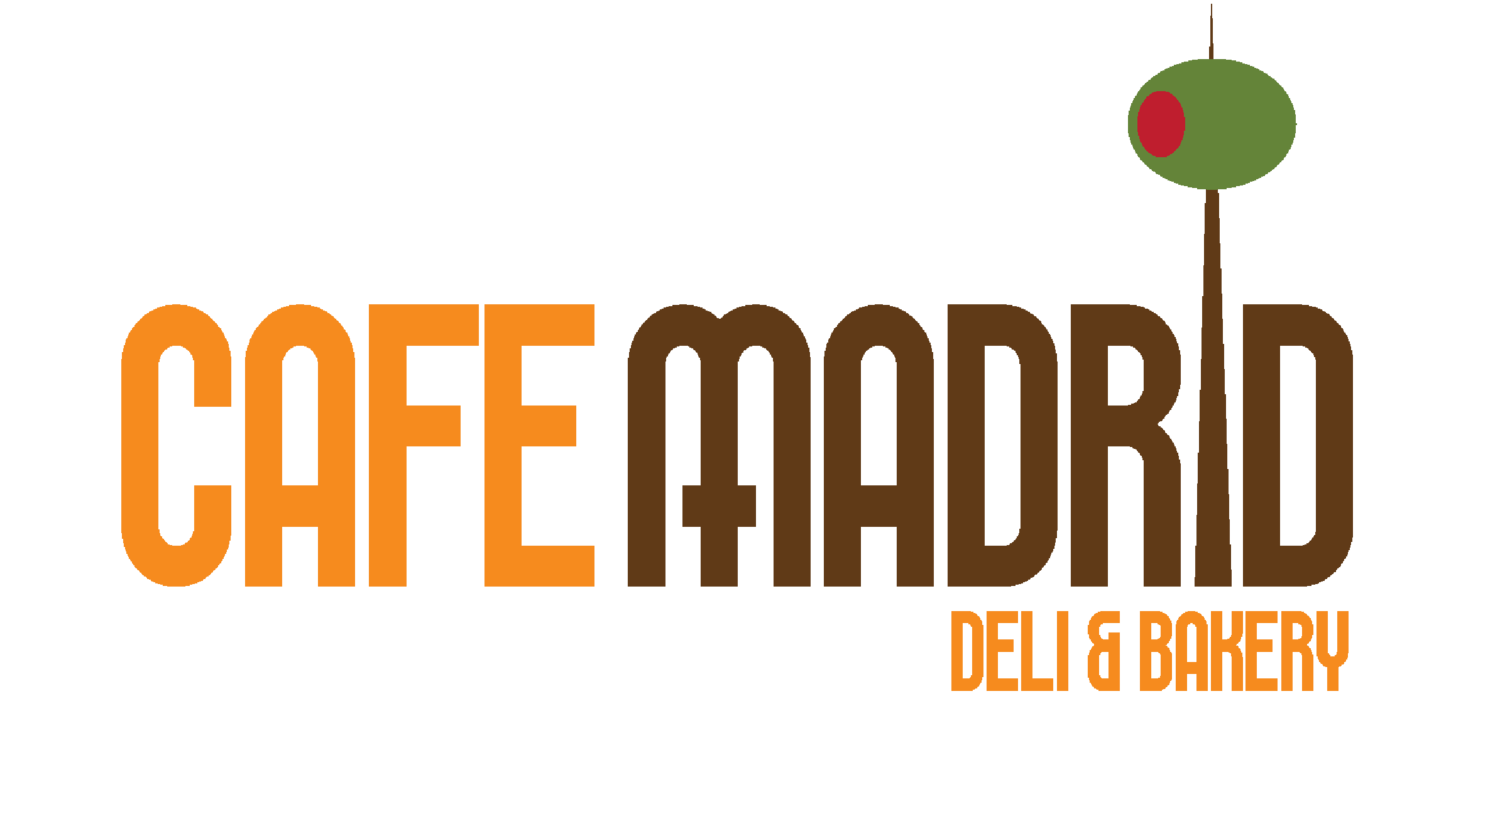 CAFE MADRID DELI & BAKERY